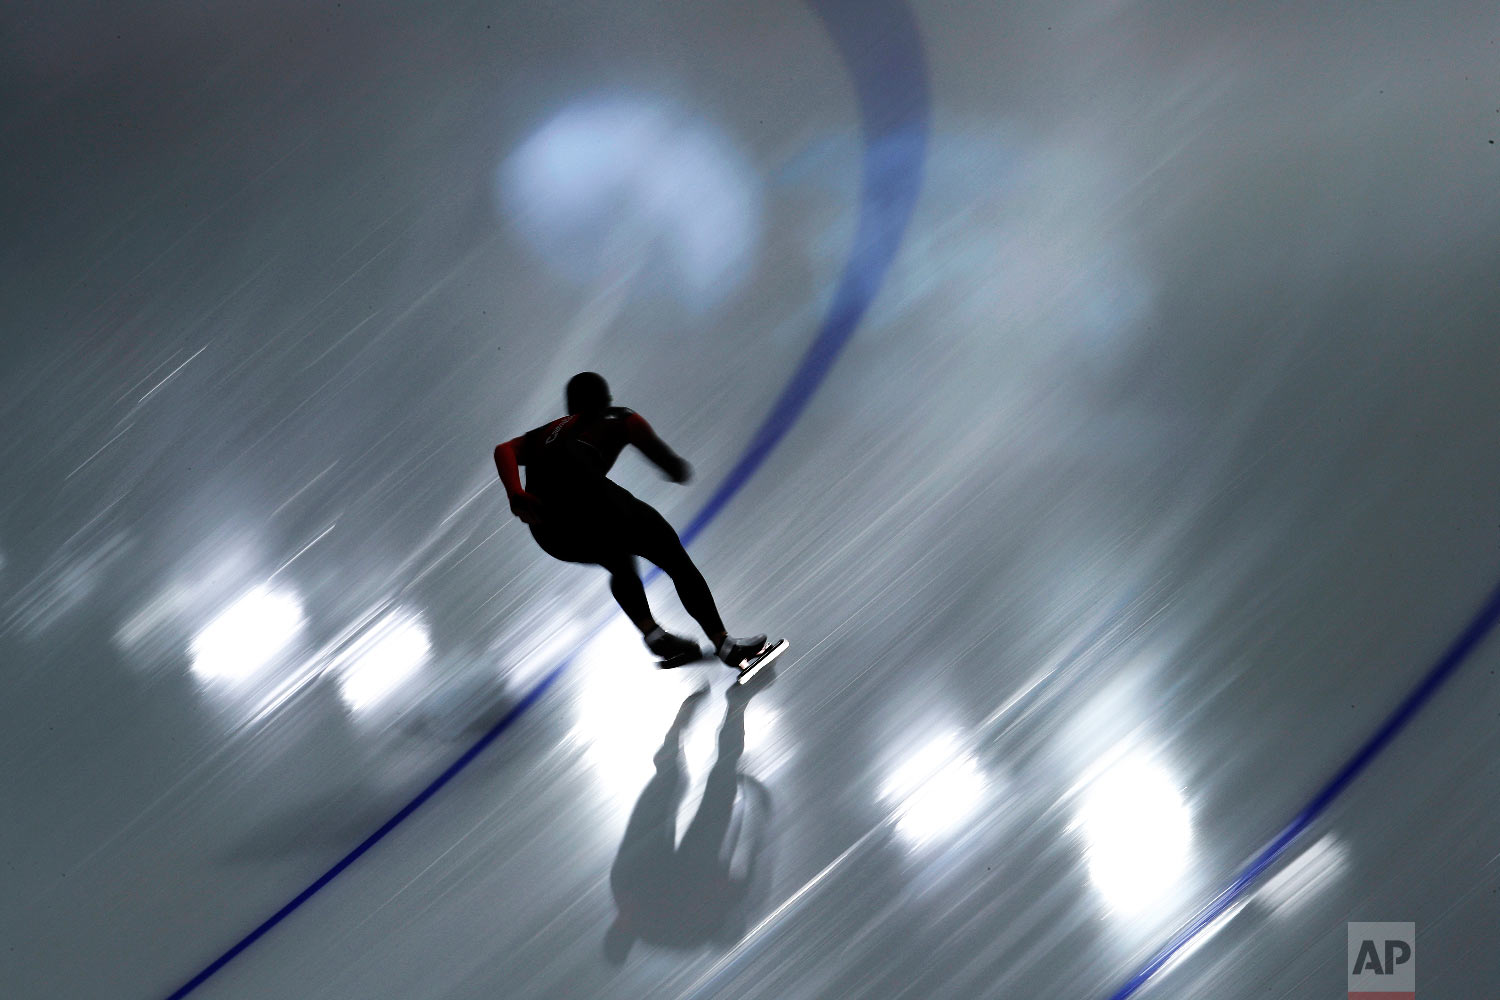 A skater practices at the Gangneung Oval during a speed skating training session prior to the 2018 Winter Olympics in Gangneung, South Korea, Thursday, Feb. 8, 2018. (AP Photo/John Locher)